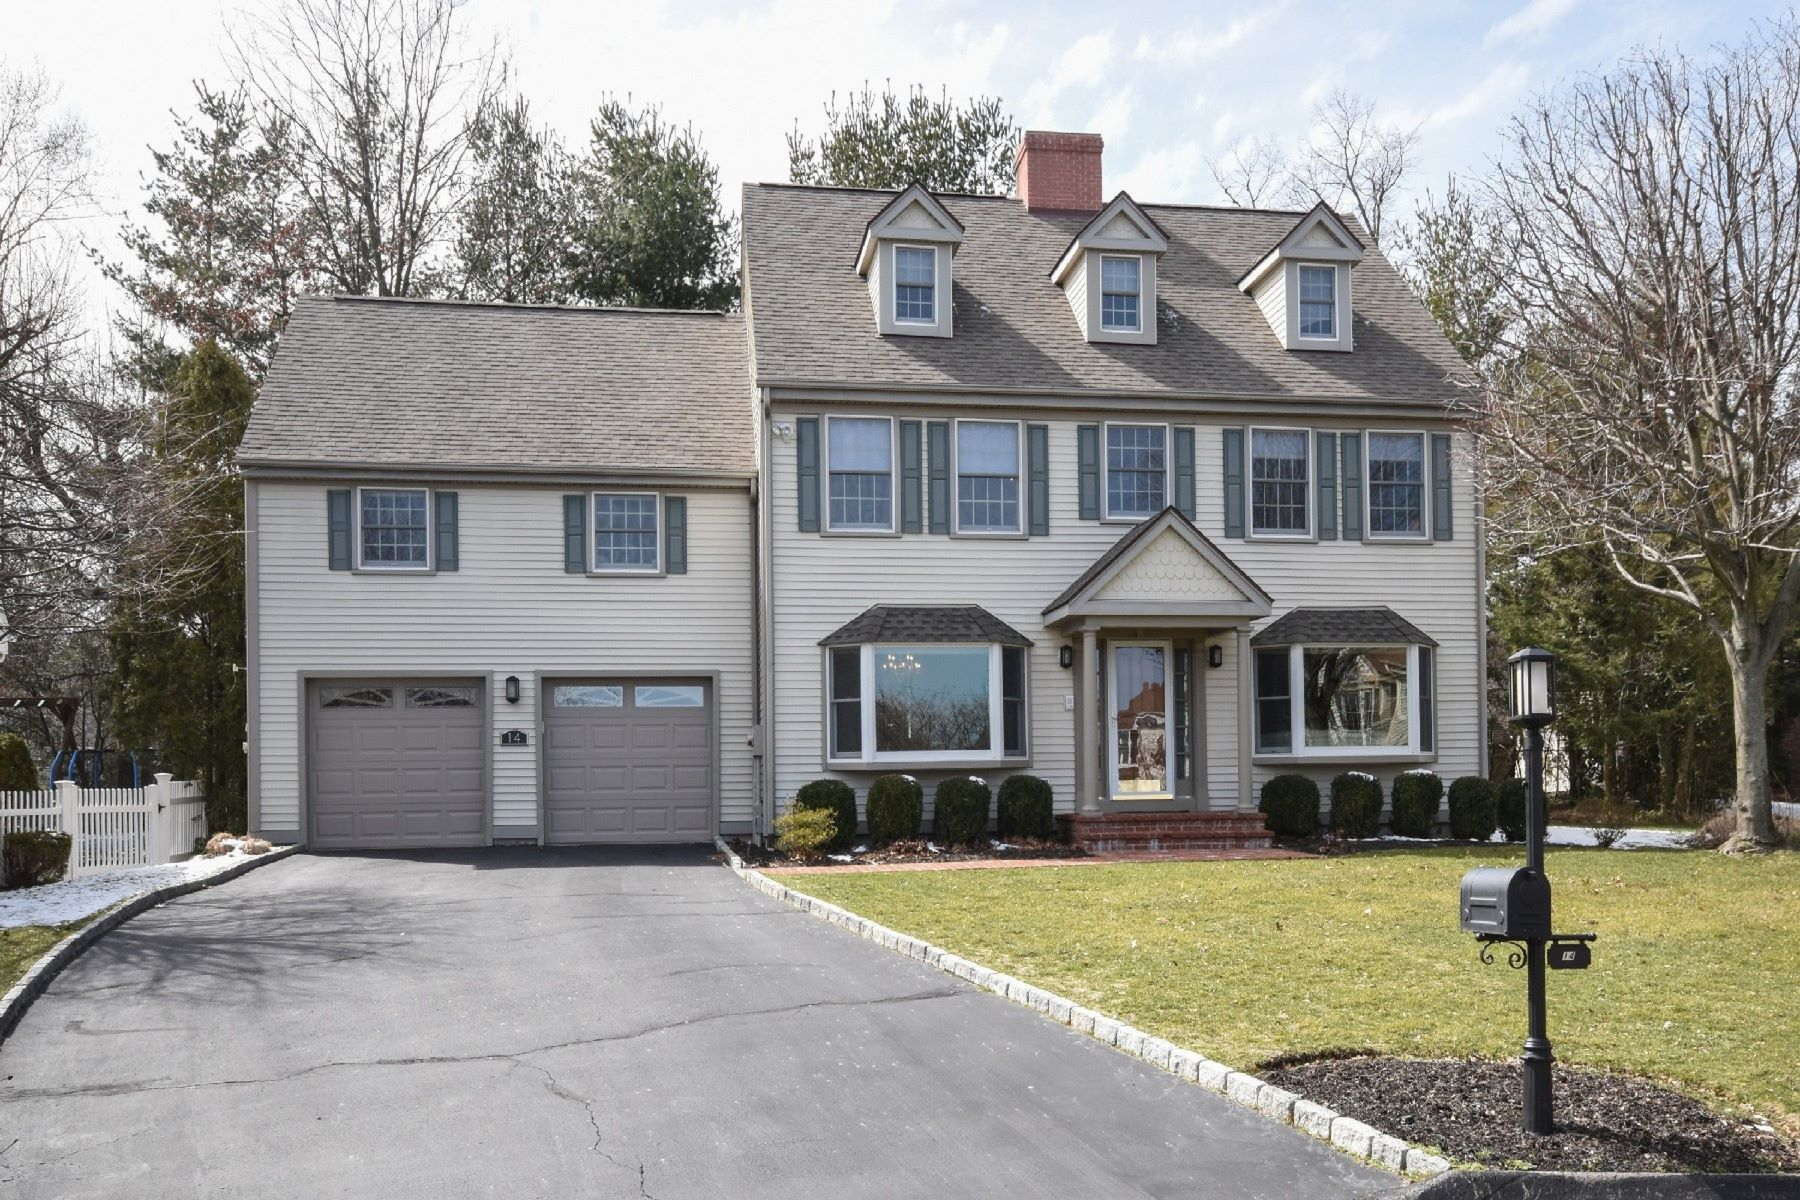 Single Family Home for Rent at Holly Pond Colonial 14 Holly Cove Circle, Stamford, Connecticut, 06902 United States